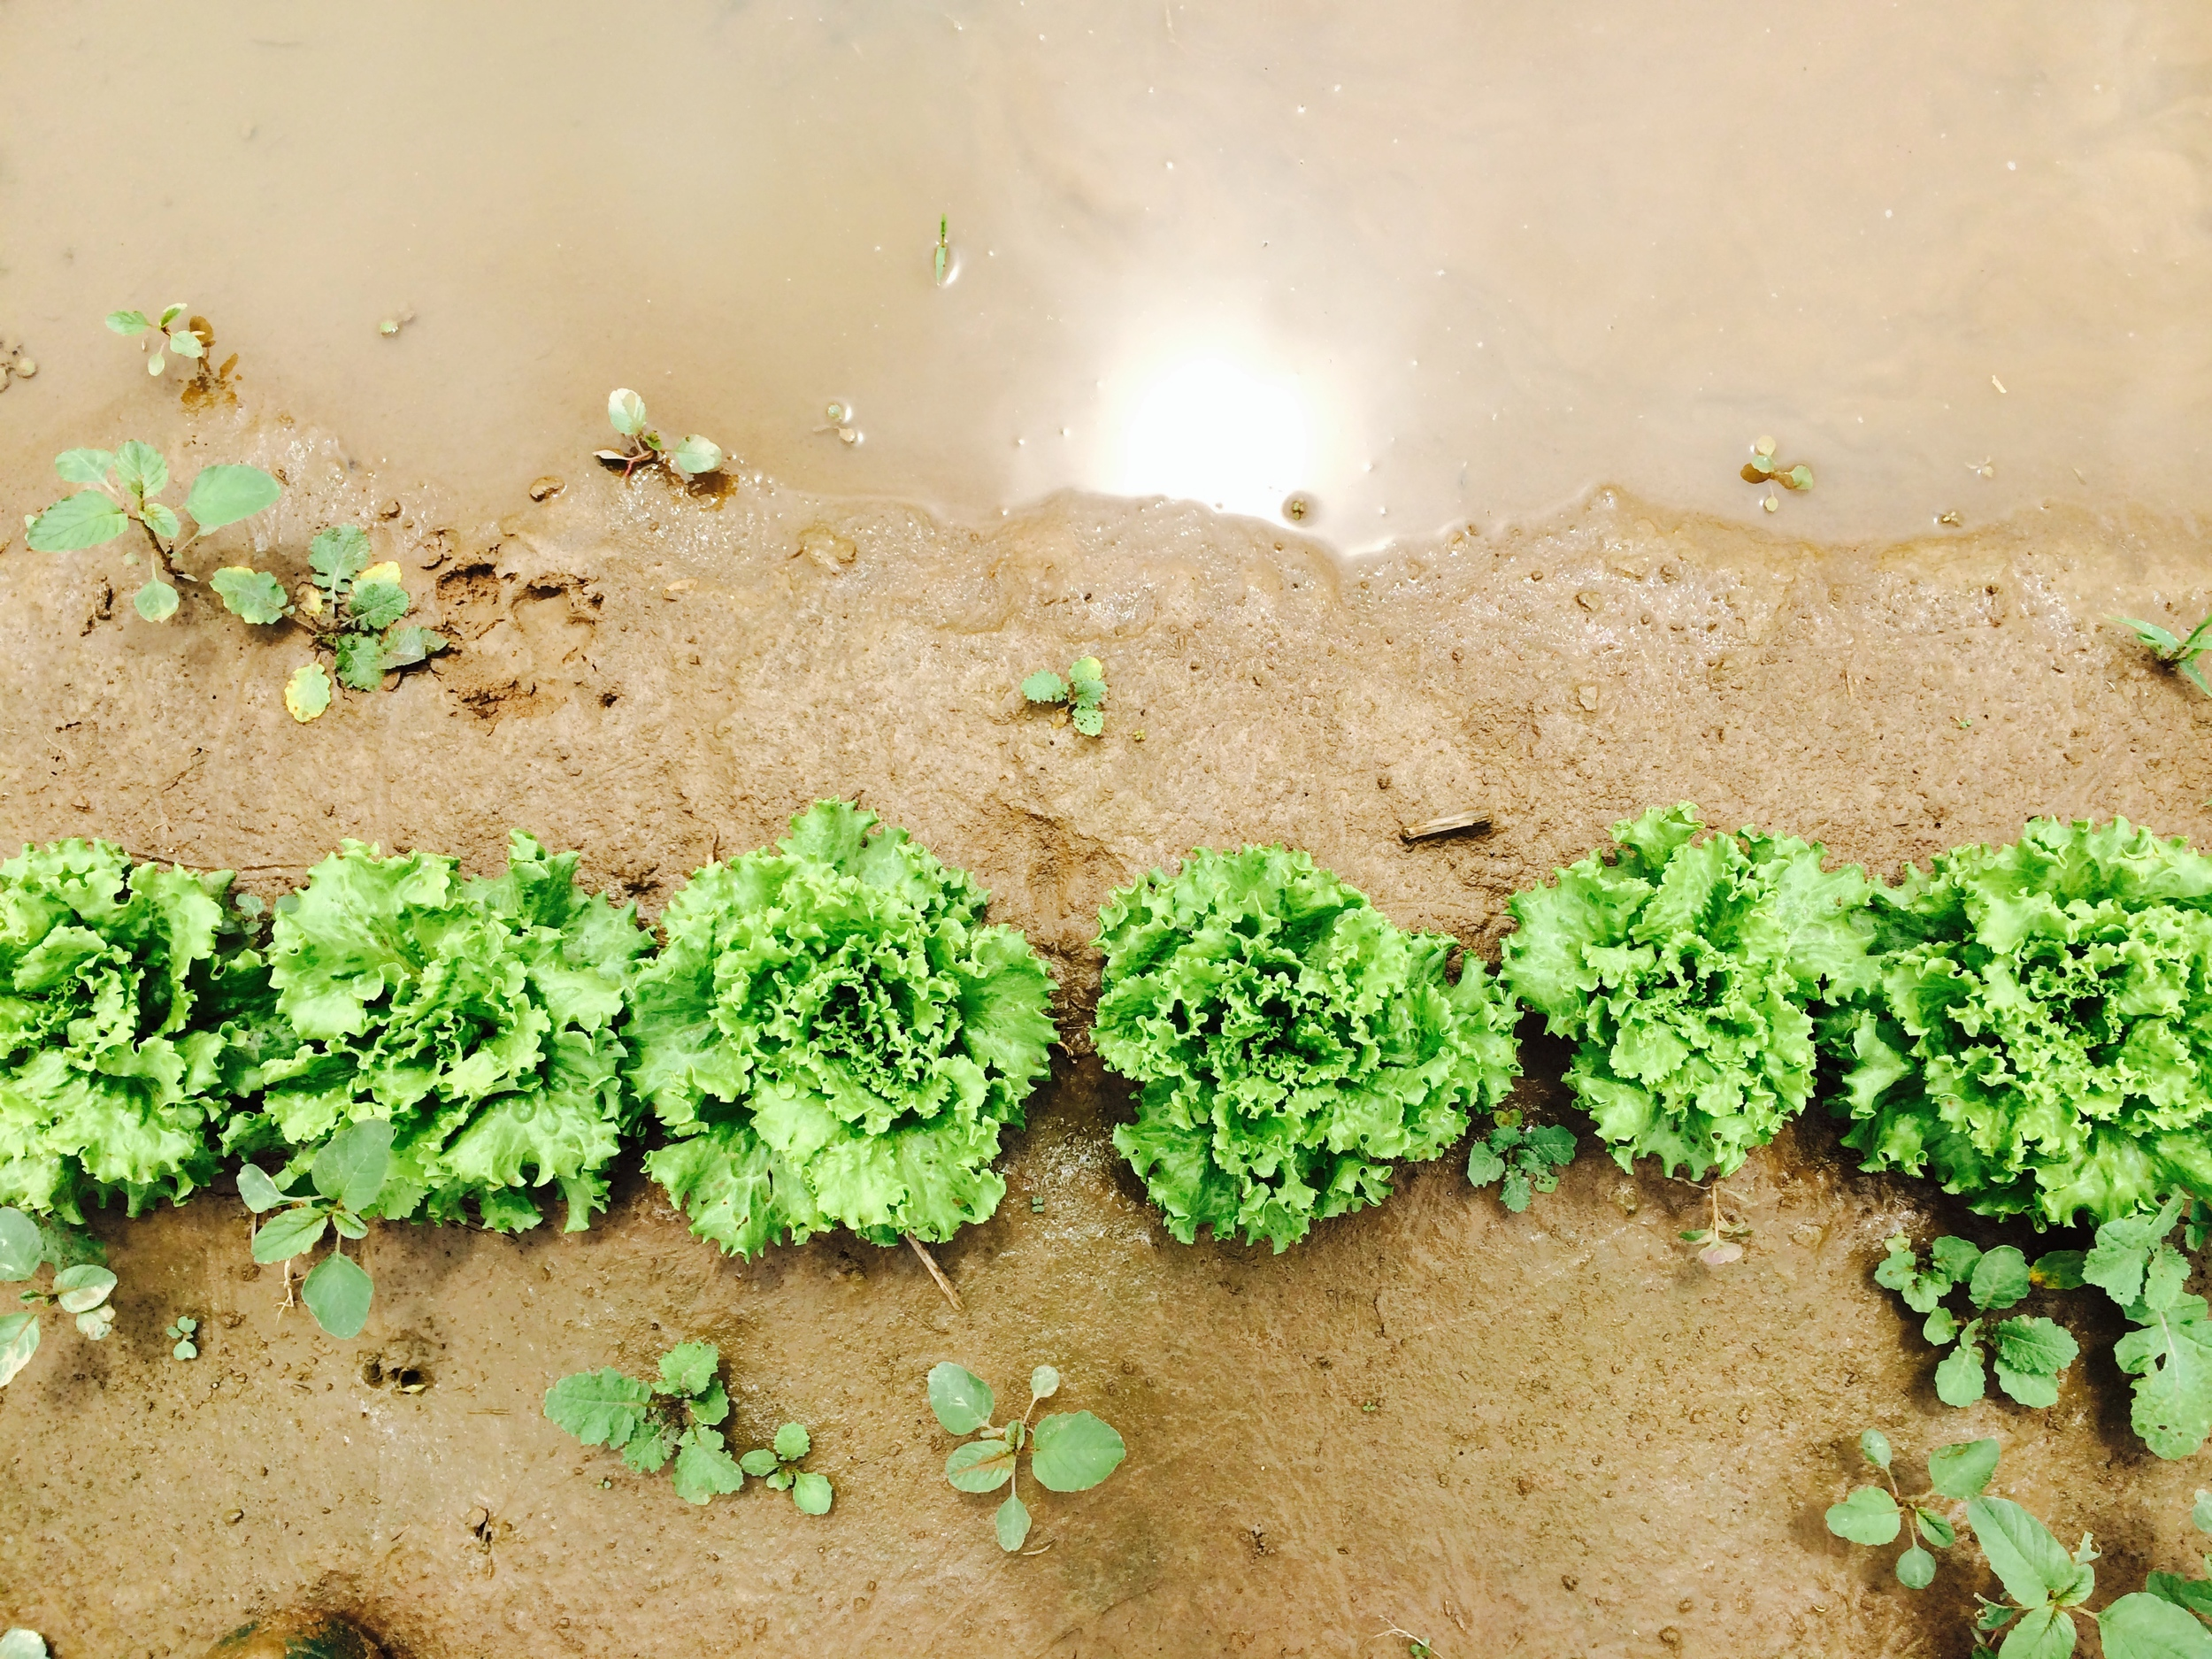 Our muddy lettuce patch.